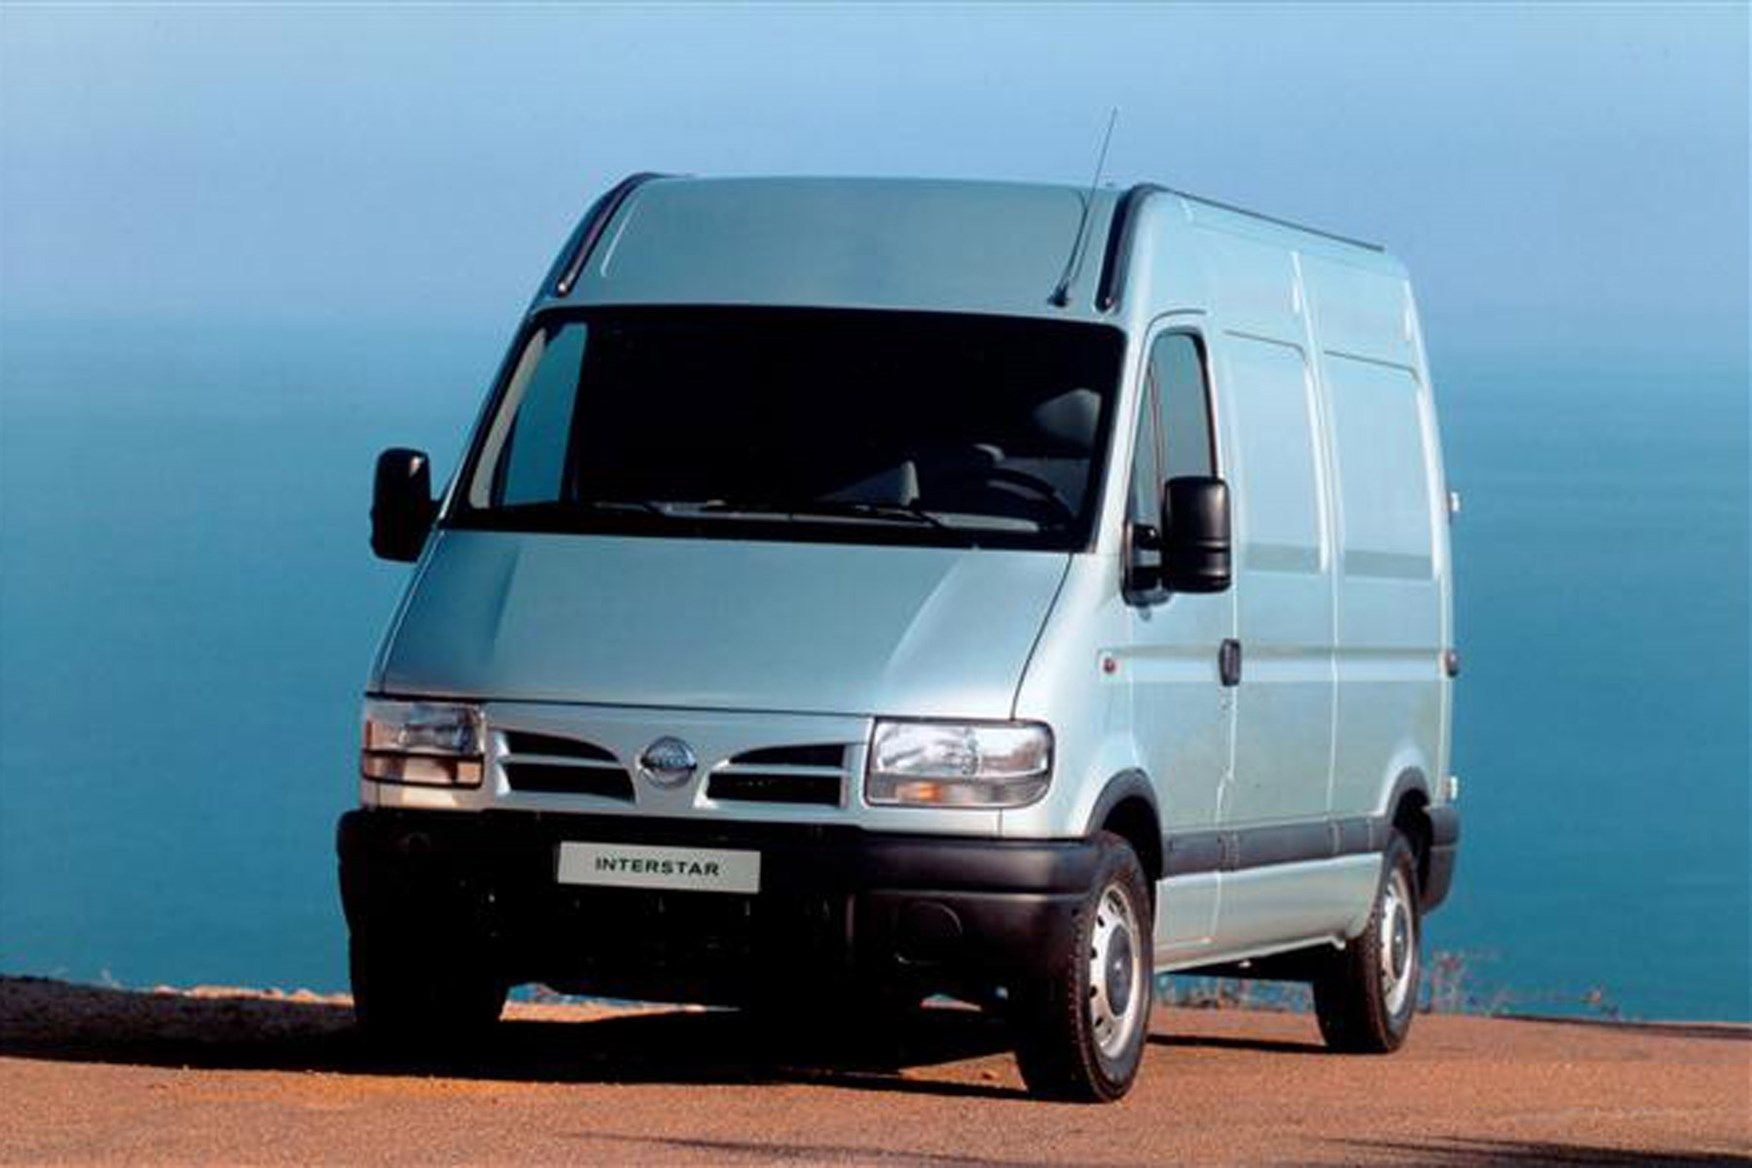 Nissan Interstar review on Parkers Vans - front exterior